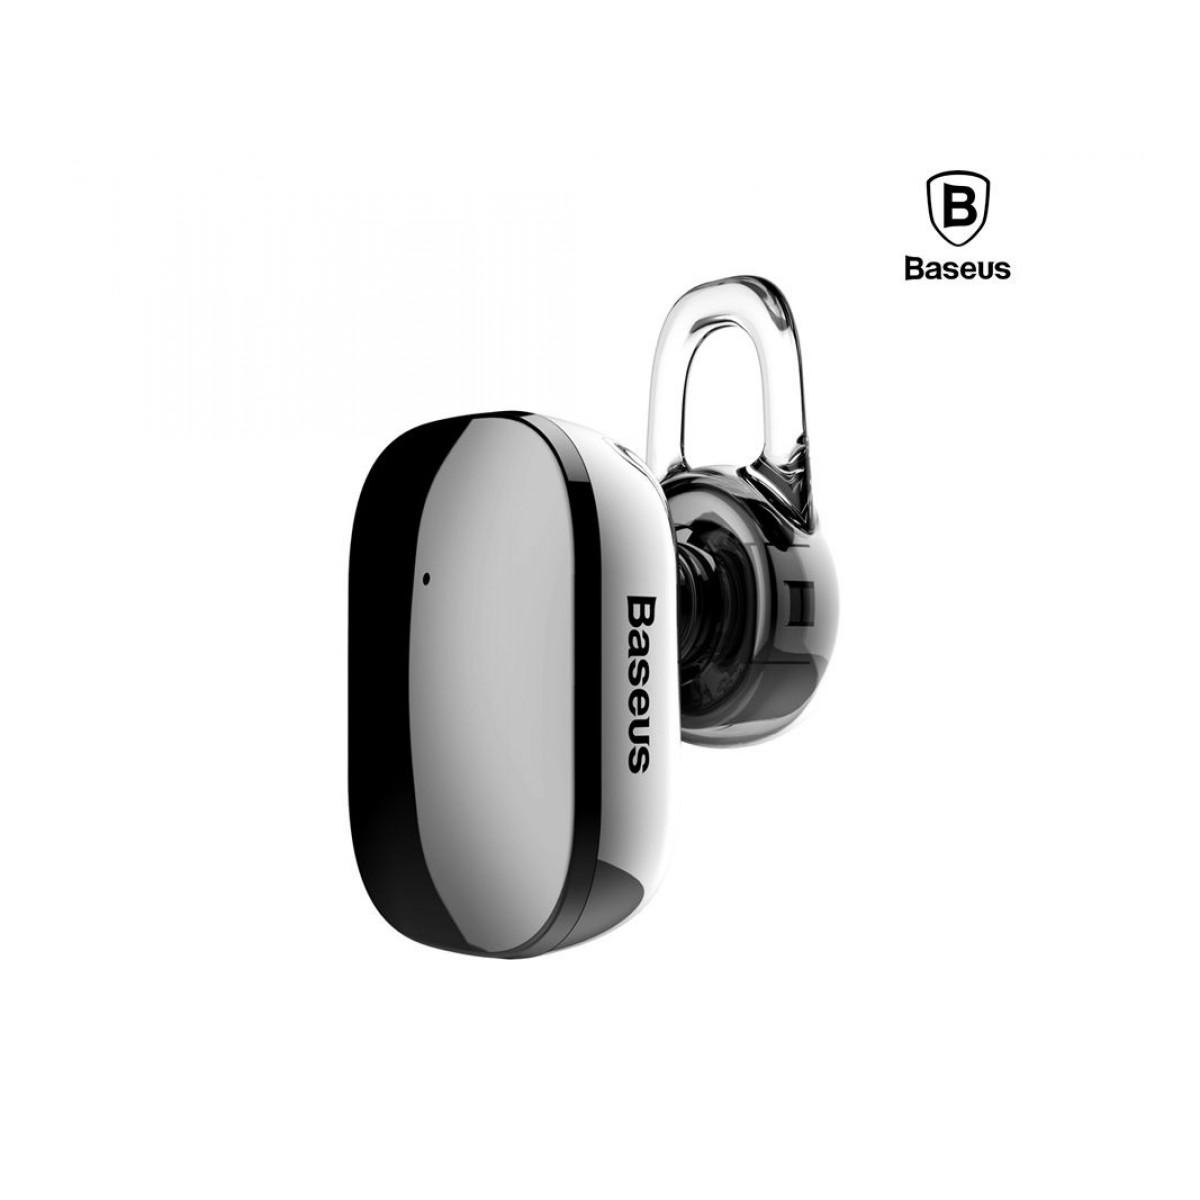 Buy Baseus In Ear Headphones At Best Prices Online Pakistan Music Series Audio Cable Black For Iphone Encok Mini Wireless Earphone Nga02